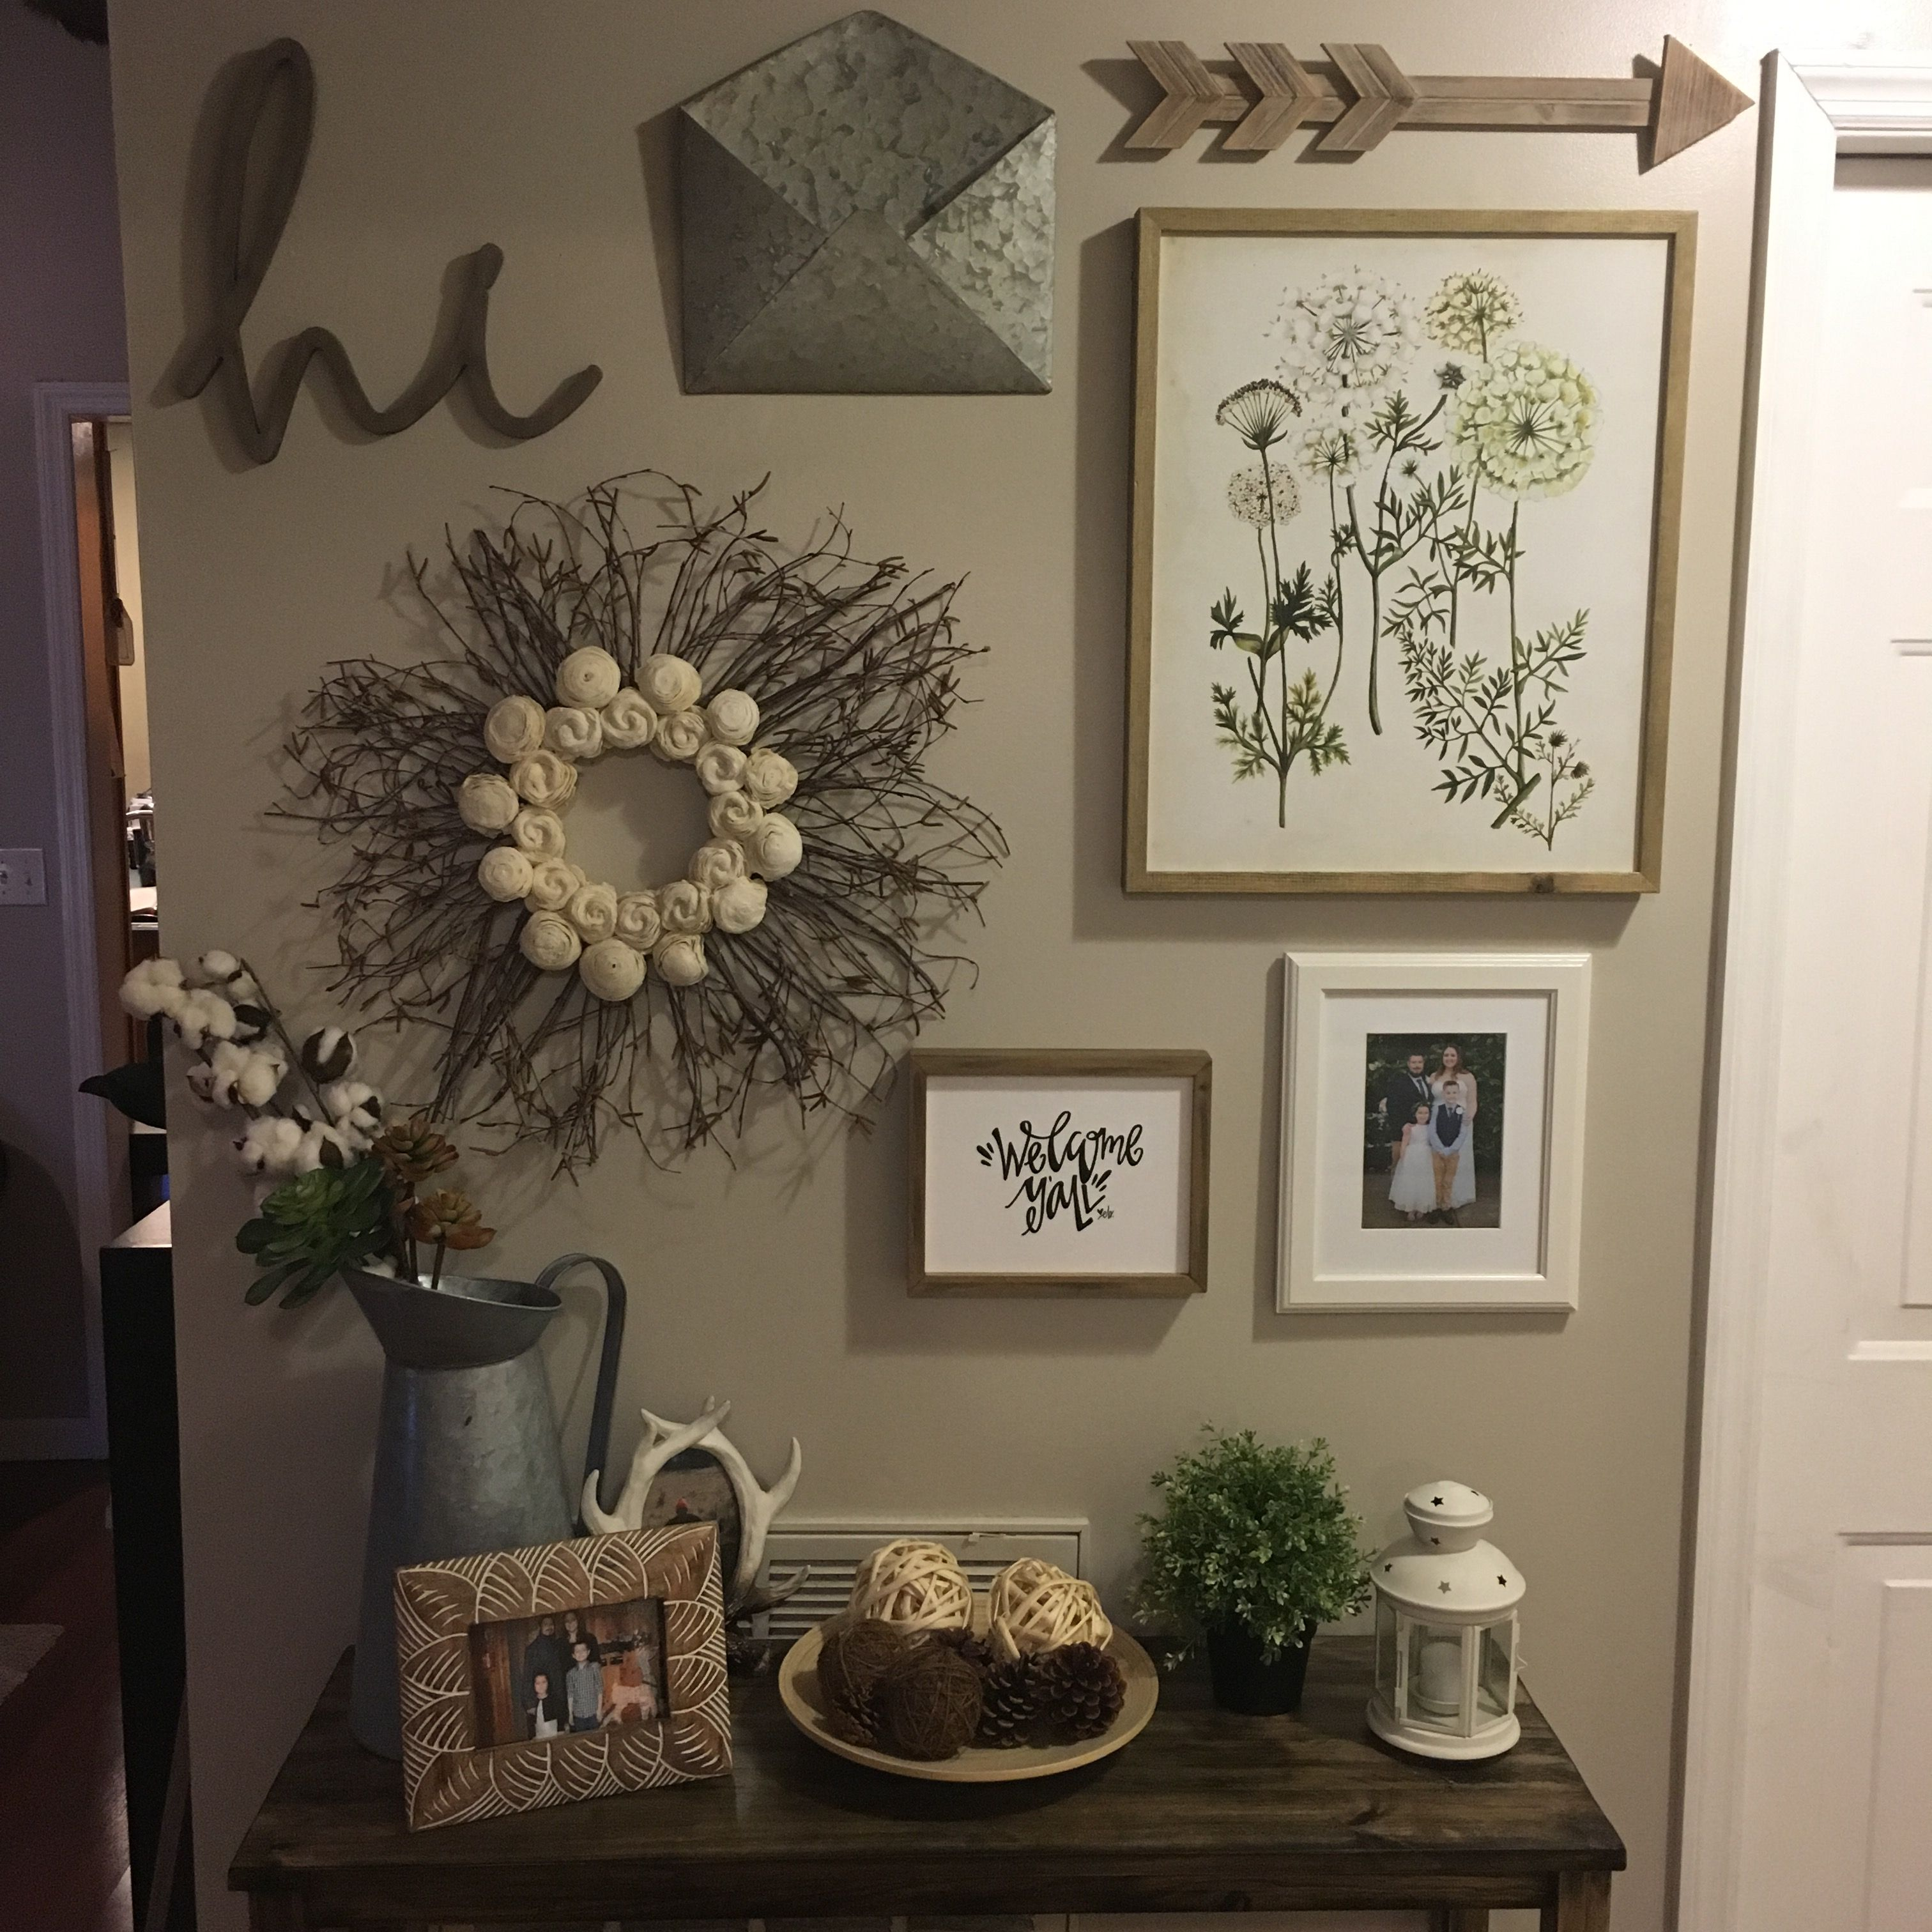 Entryway Gallery Wall With A Rustic Farmhouse Theme Most Pieces Found Hobby Lobby